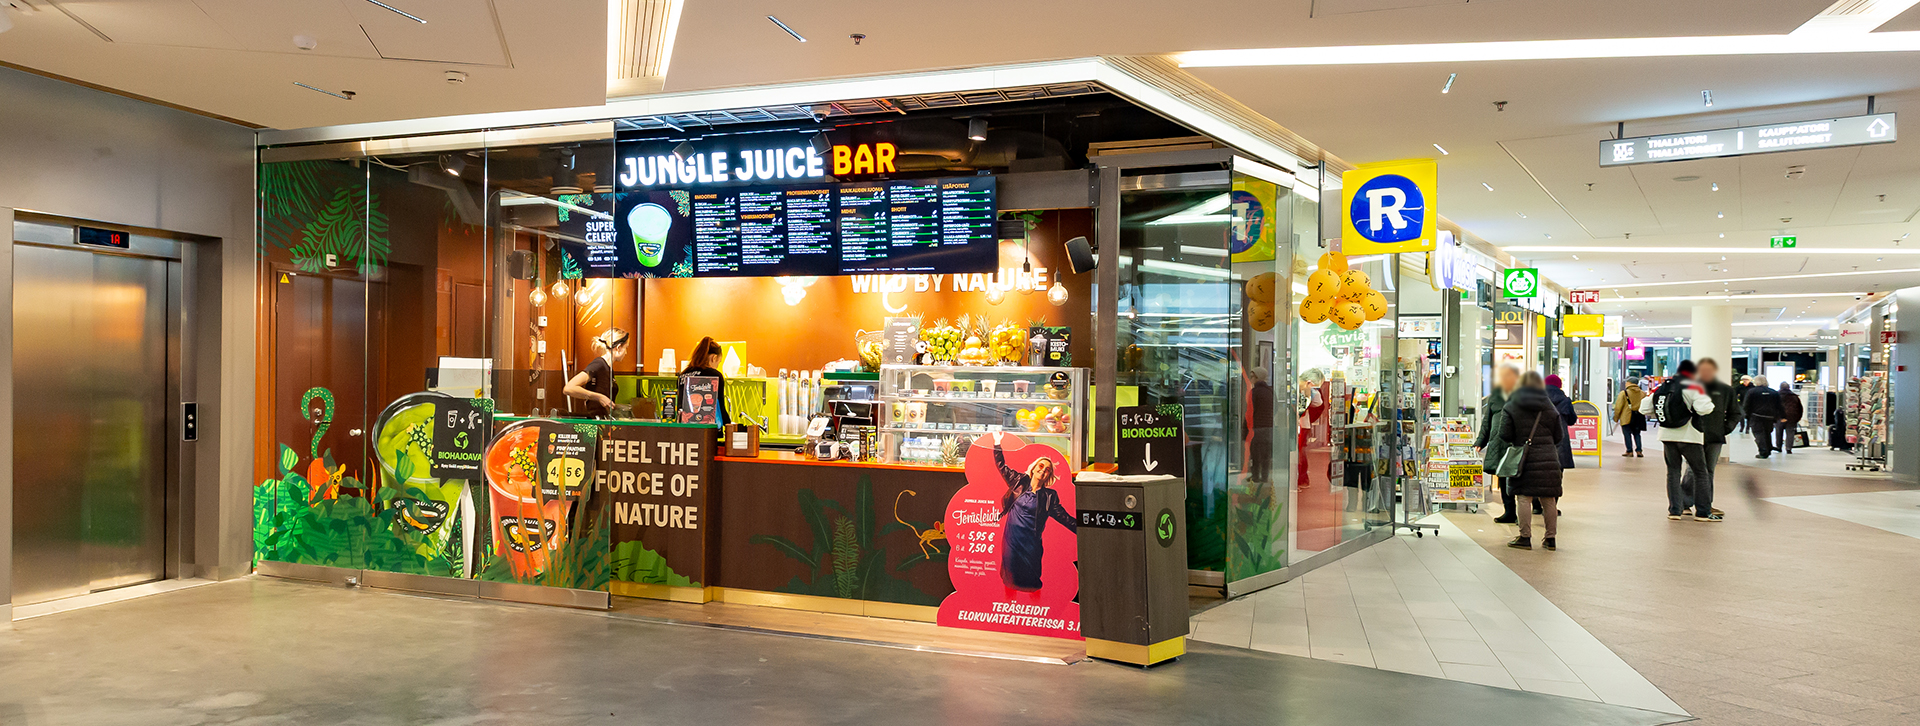 jungle-juice-bar